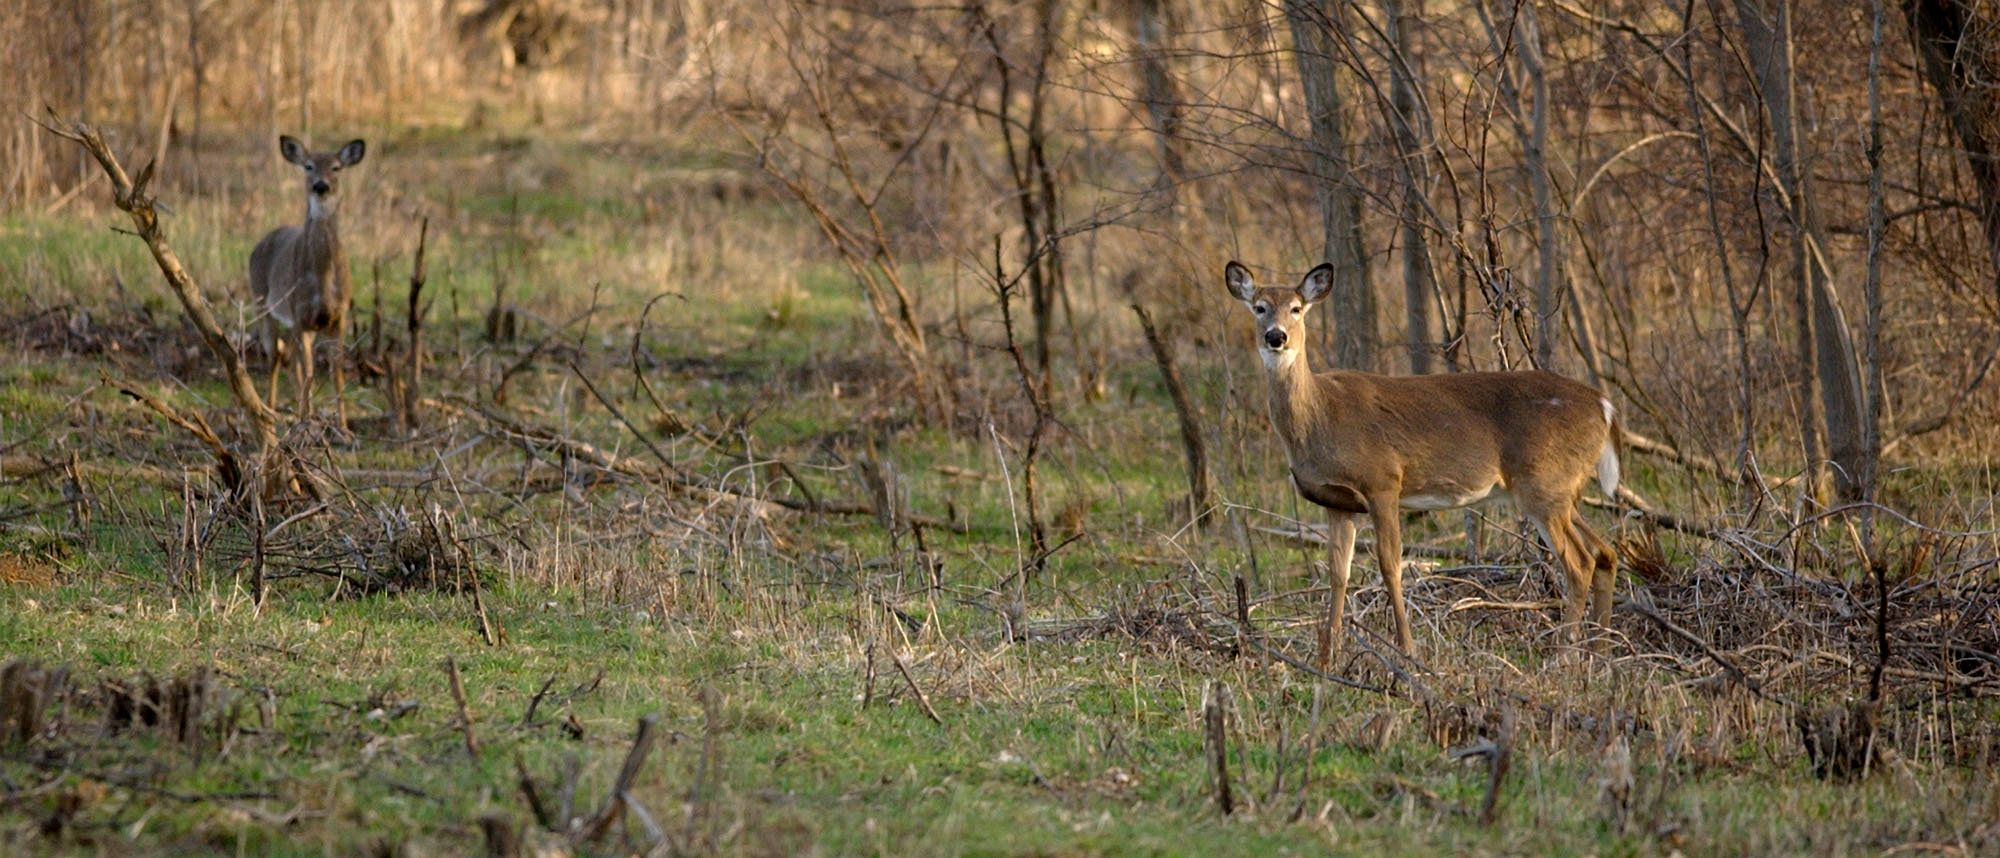 Two deer keep a look out while grazing in a wooded area in Owasco, N.Y., Saturday, April 16, 2005. Chronic wasting disease was detected earlier this month in two private captive deer herds in nearby Oneida County, the first time it was found outside the Midwest or Rocky Mountain regions. The fatal nervous system ailment has ravaged captive and wild deer and elk herds in a dozen states and two Canadian provinces since it was first recognized in the 1960s. (AP Photo/Kevin Rivoli)